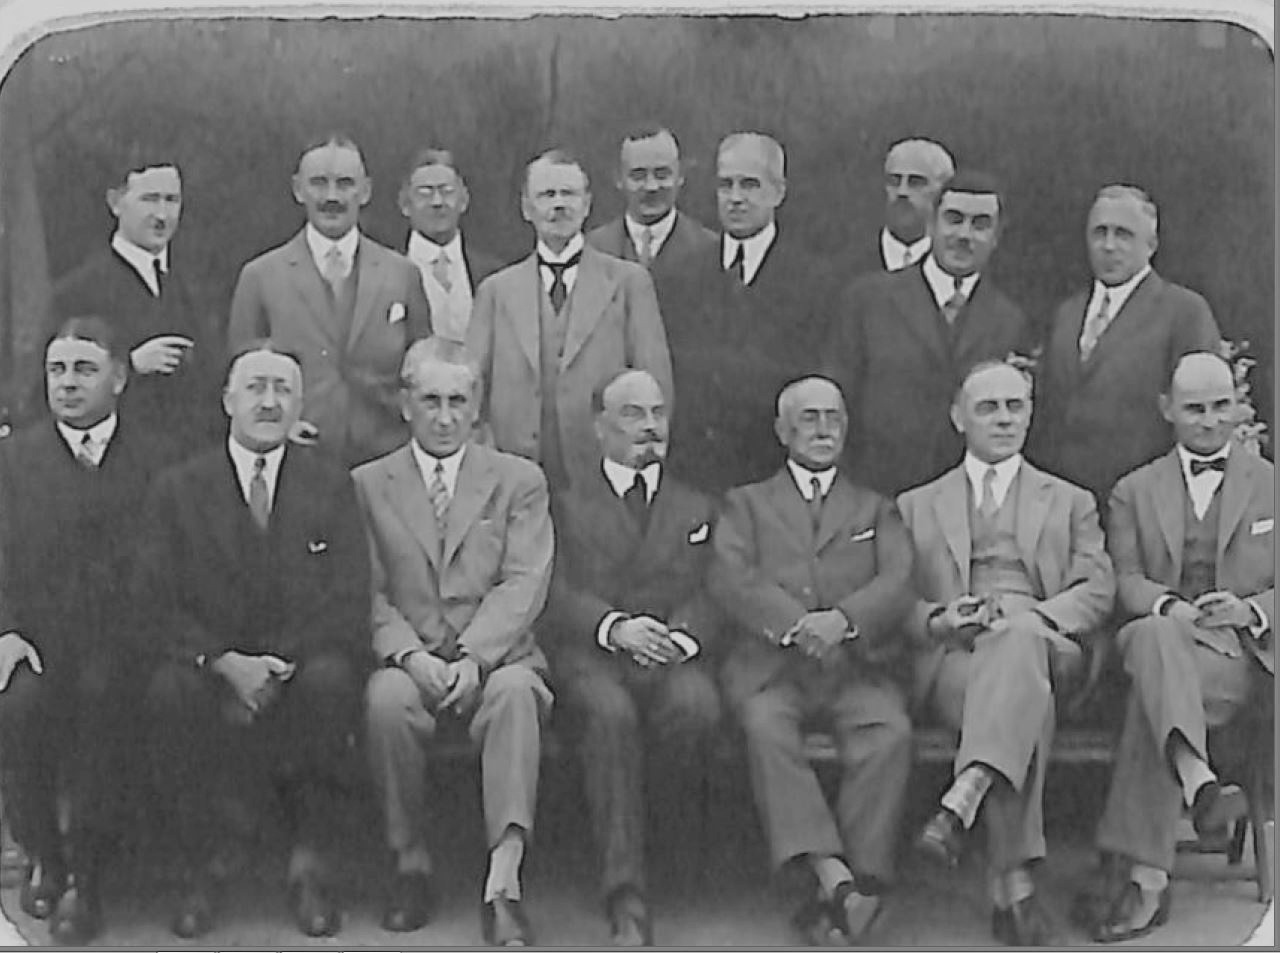 Delegates at the first meeting of CIRM at San Sebastian in 1928